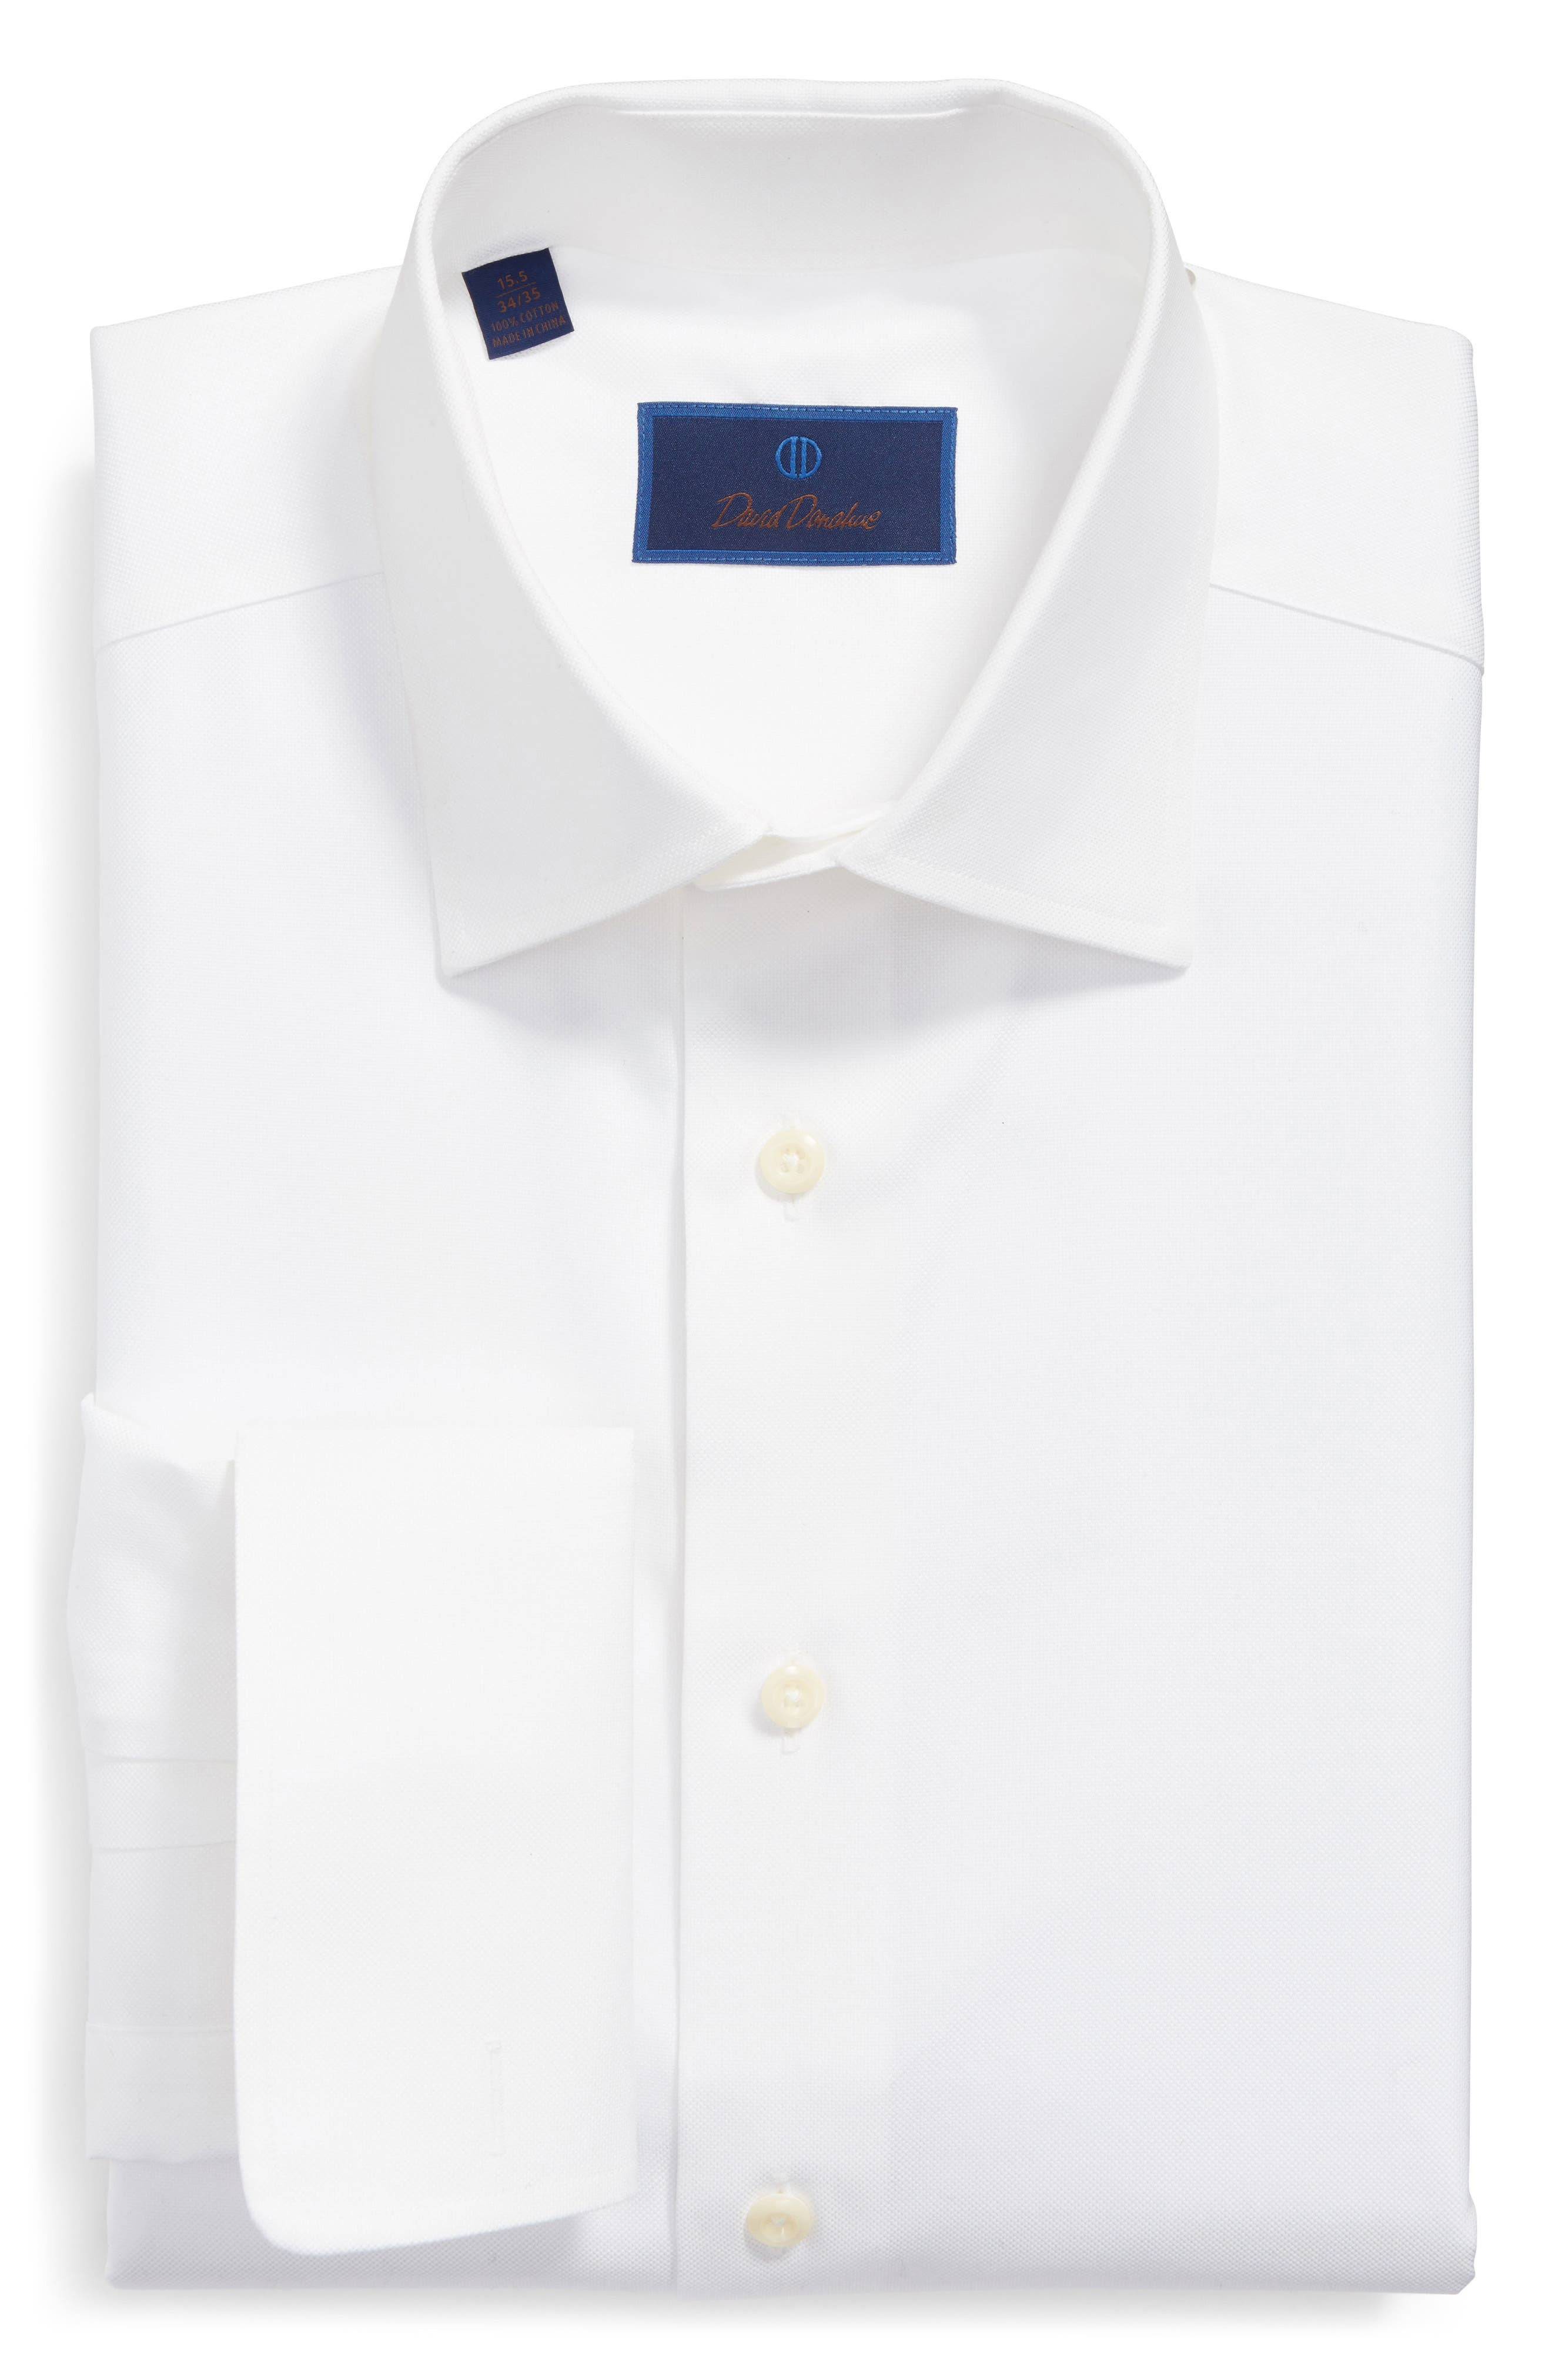 DAVID DONAHUE Regular Fit Texture French Cuff Dress Shirt, Main, color, WHITE